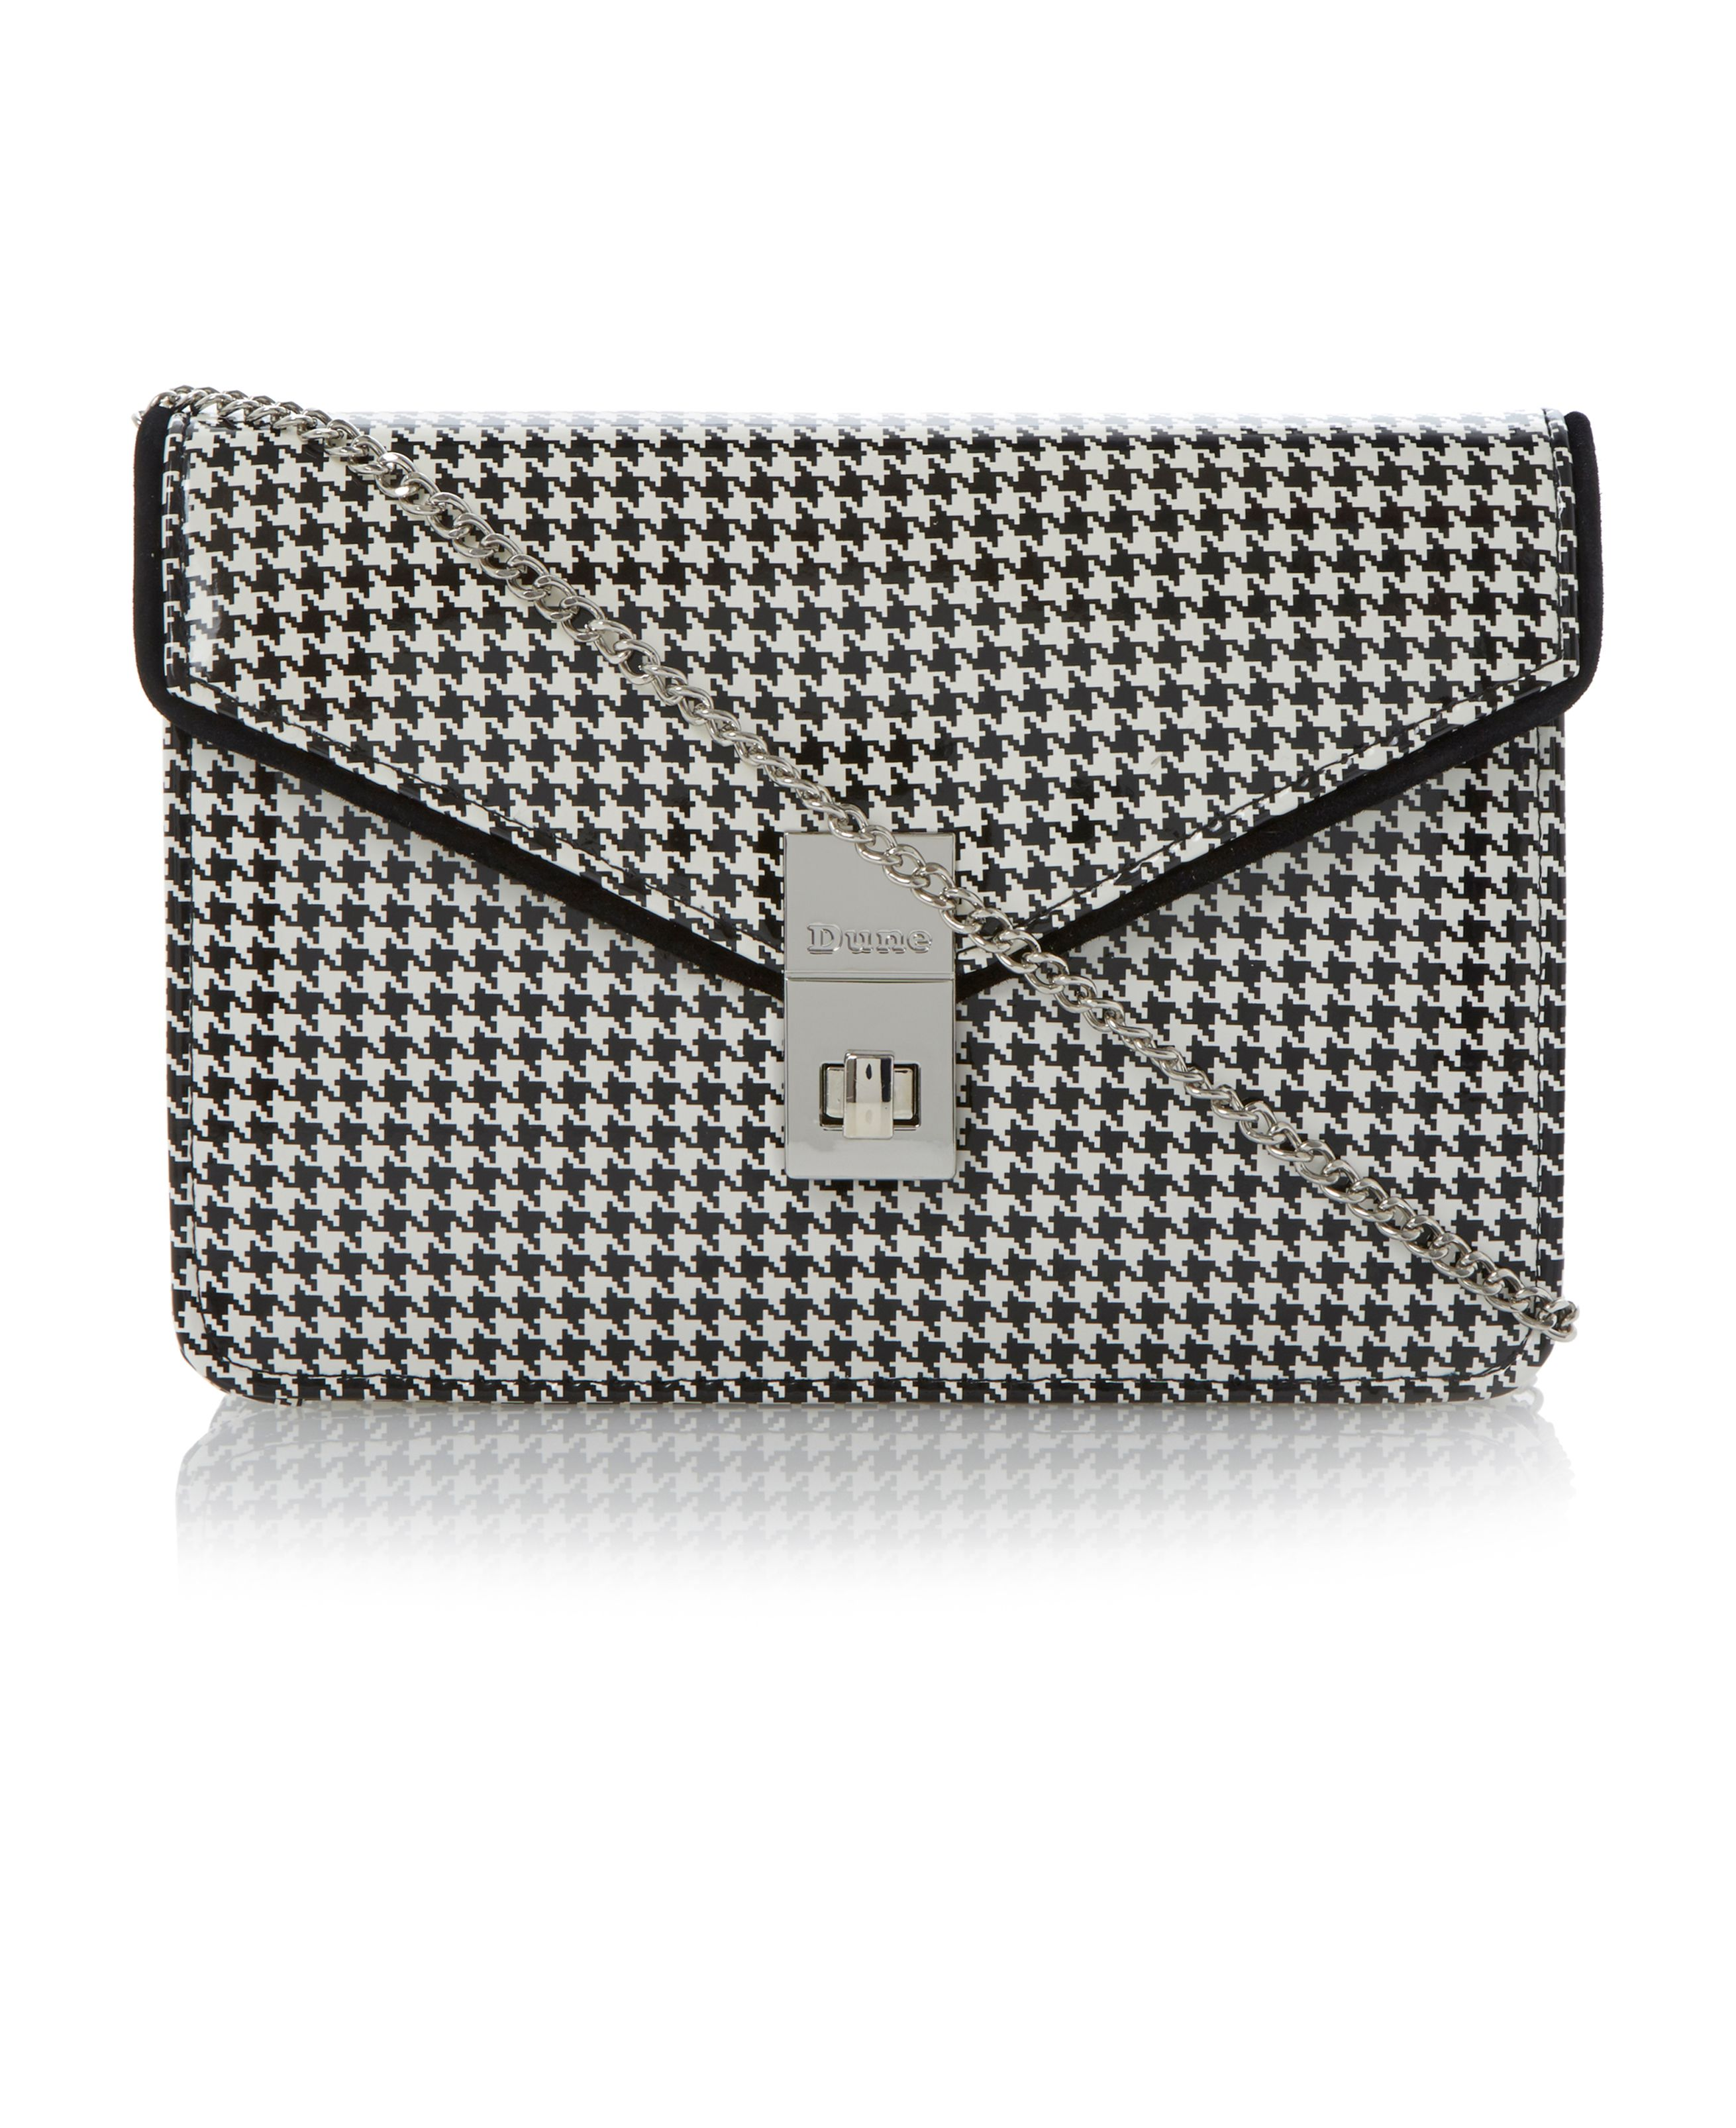 Brookside patent dogtooth envelope clutch bag